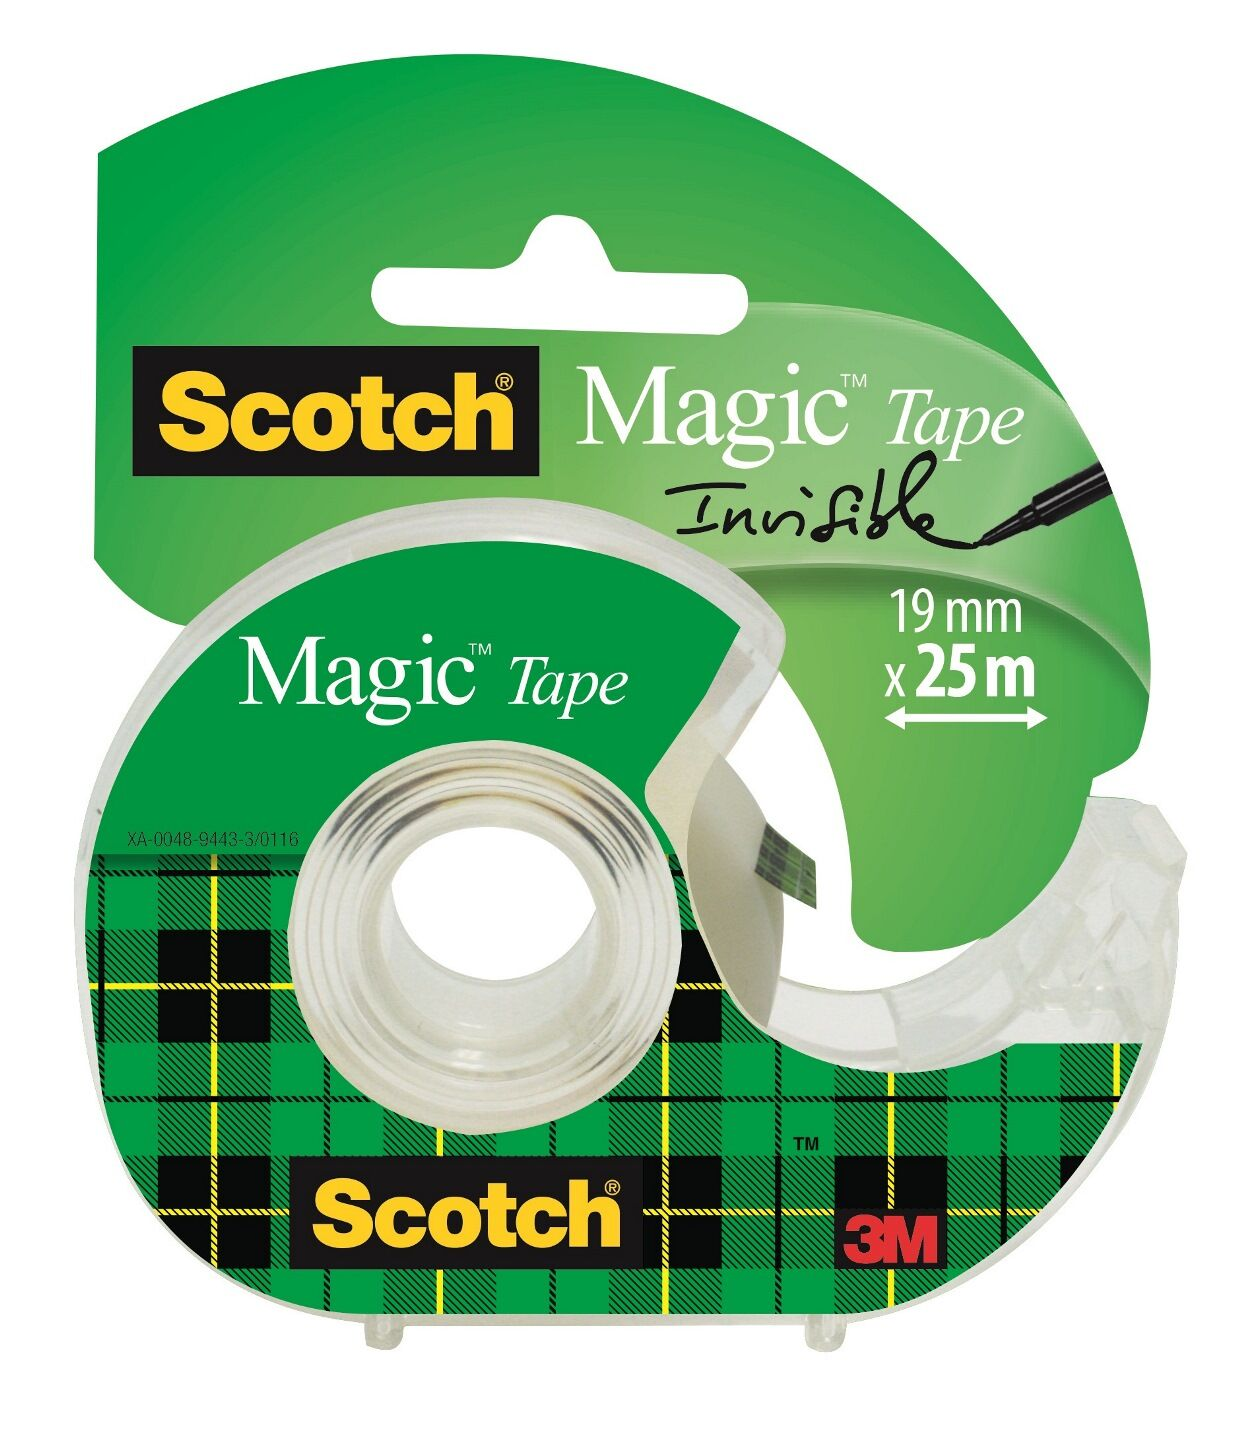 Scotch Magic - Ruban adhésif - 19 mm x 25 m - invisible